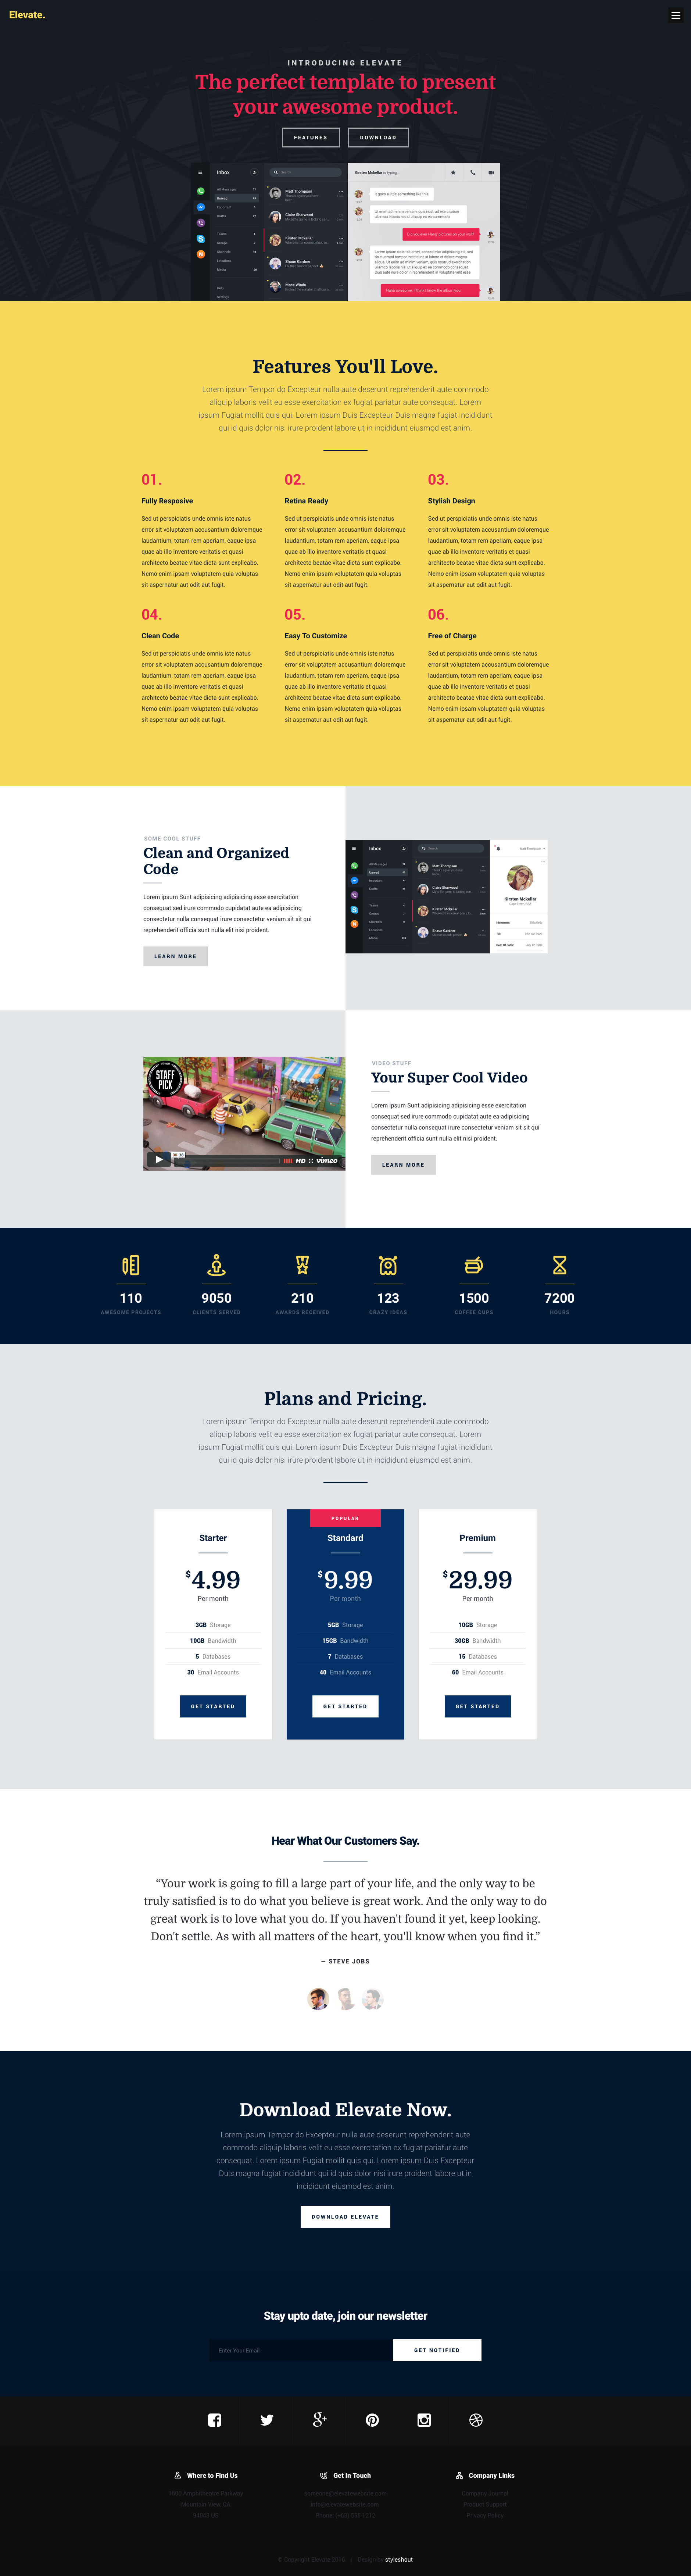 Elevate Free Responsive Html5 Landing Page Template It Has A Modern And Clean Retina Ready Design That Makes It An Ideal Landi Html5 landing page template free